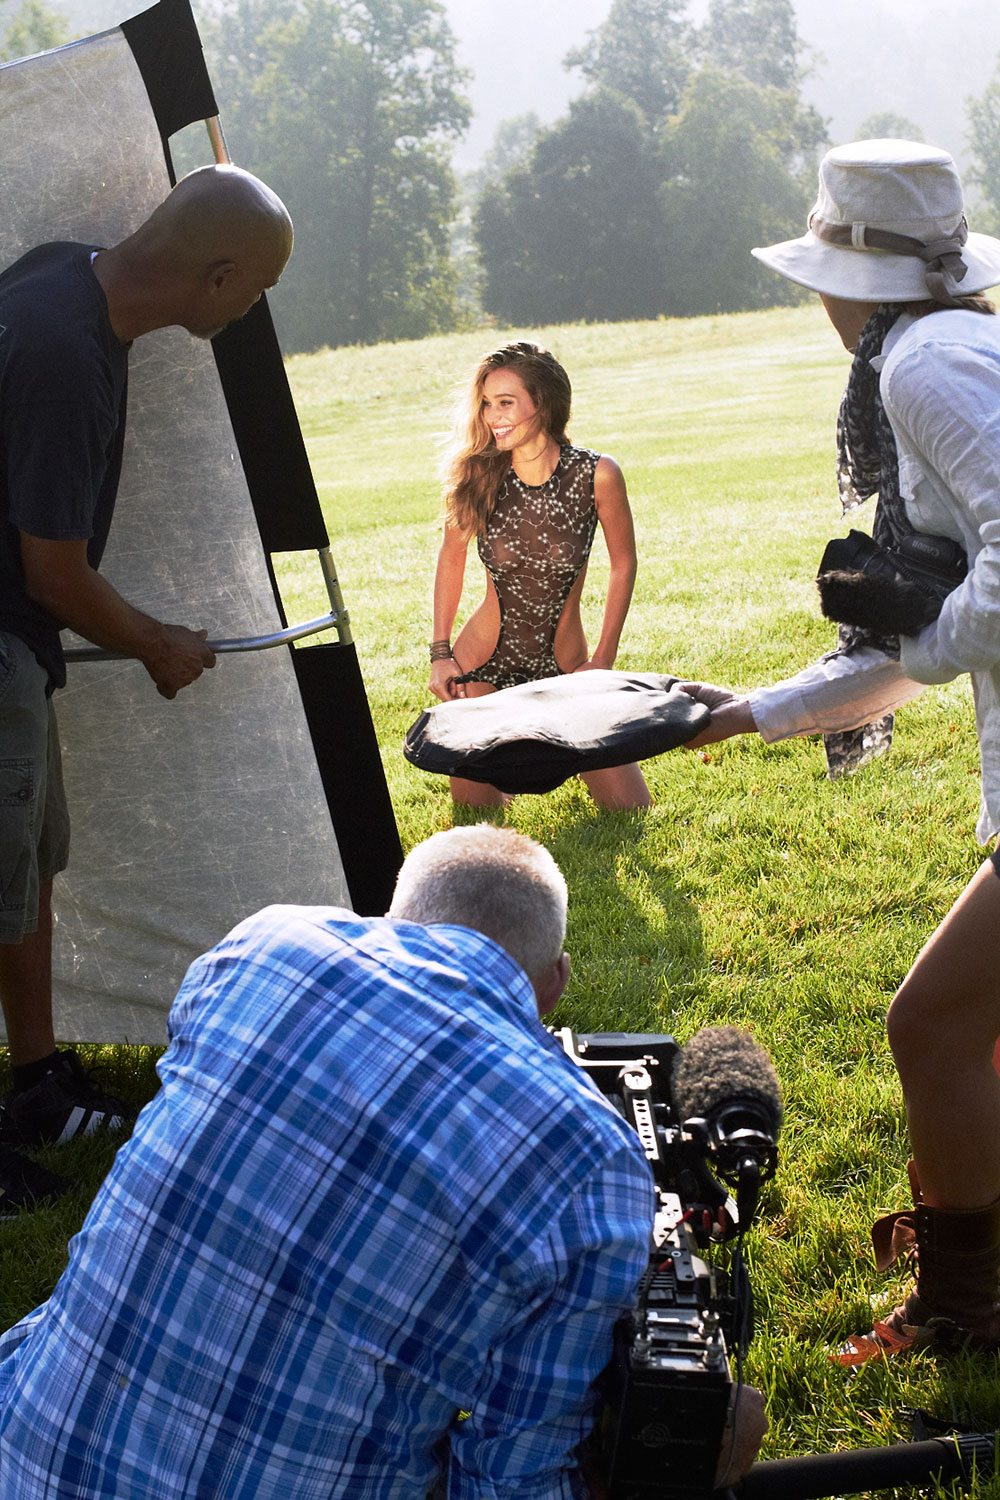 BTS with Hannah Davis at Blackberry Farm, SI Swimsuit 2015